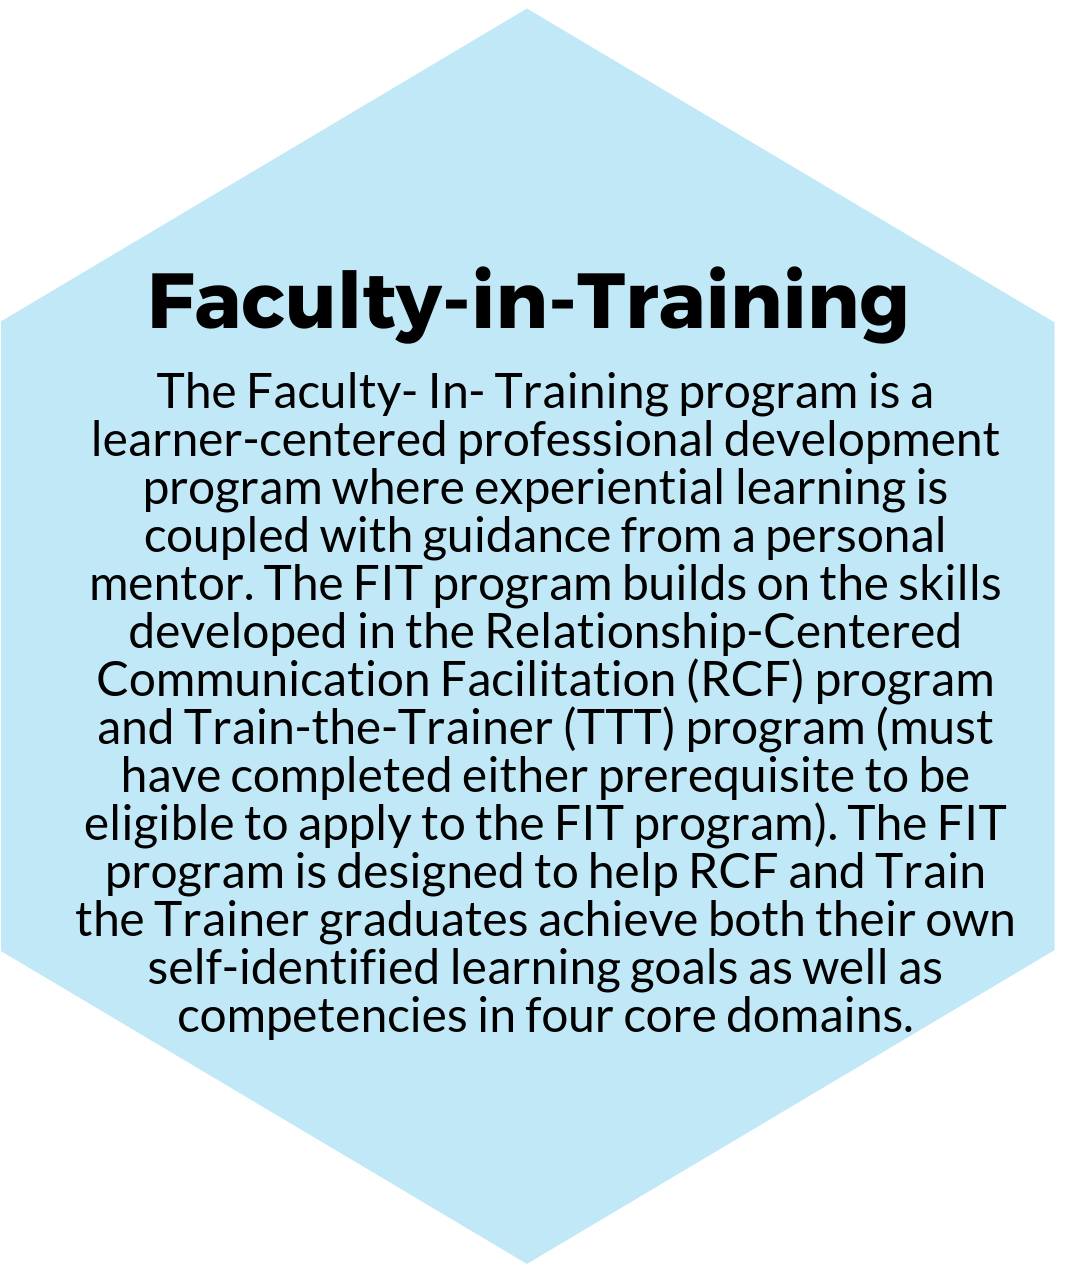 Faculty-in-Training